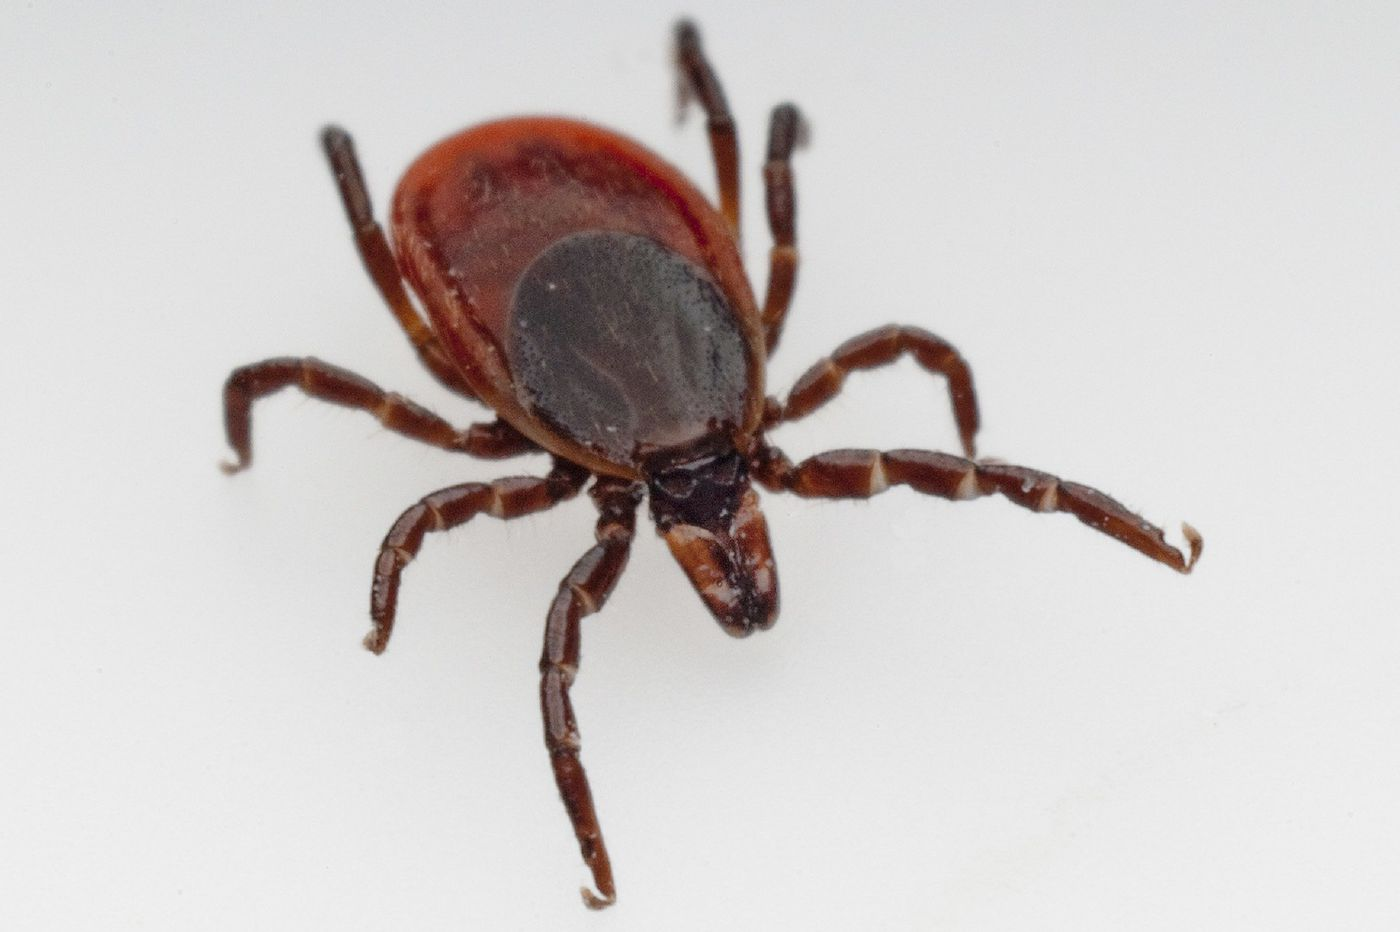 Lyme disease cases in Pa. are down, health department reports